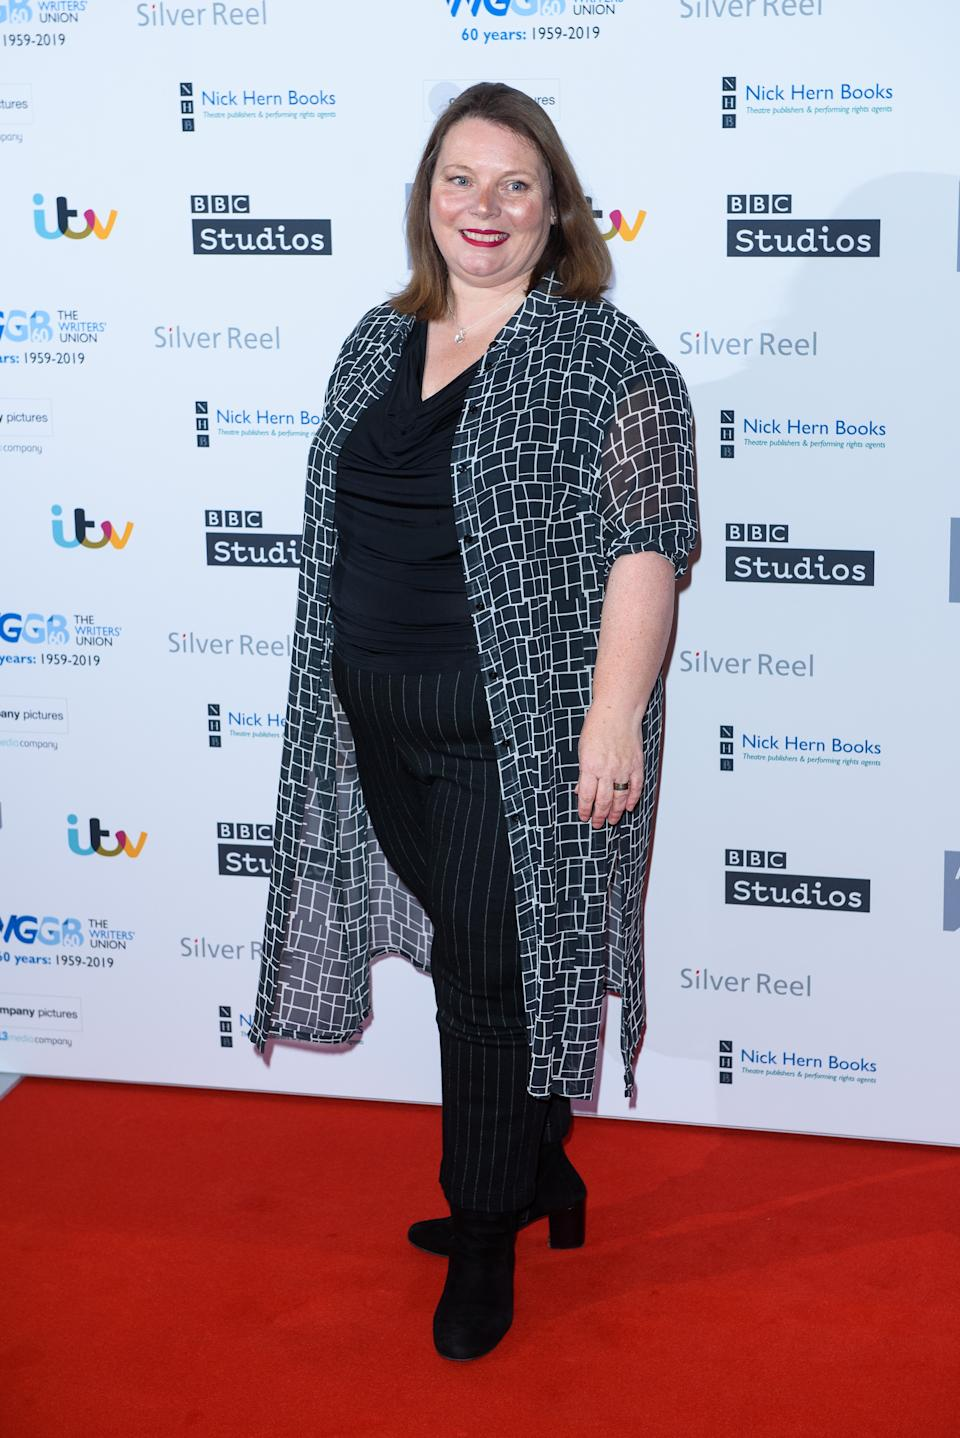 Joanna Scanlan attends the Writers' Guild Awards 2019 held at Royal College Of Physicians on January 14, 2019 in London, England. (Photo by Joe Maher/WireImage)